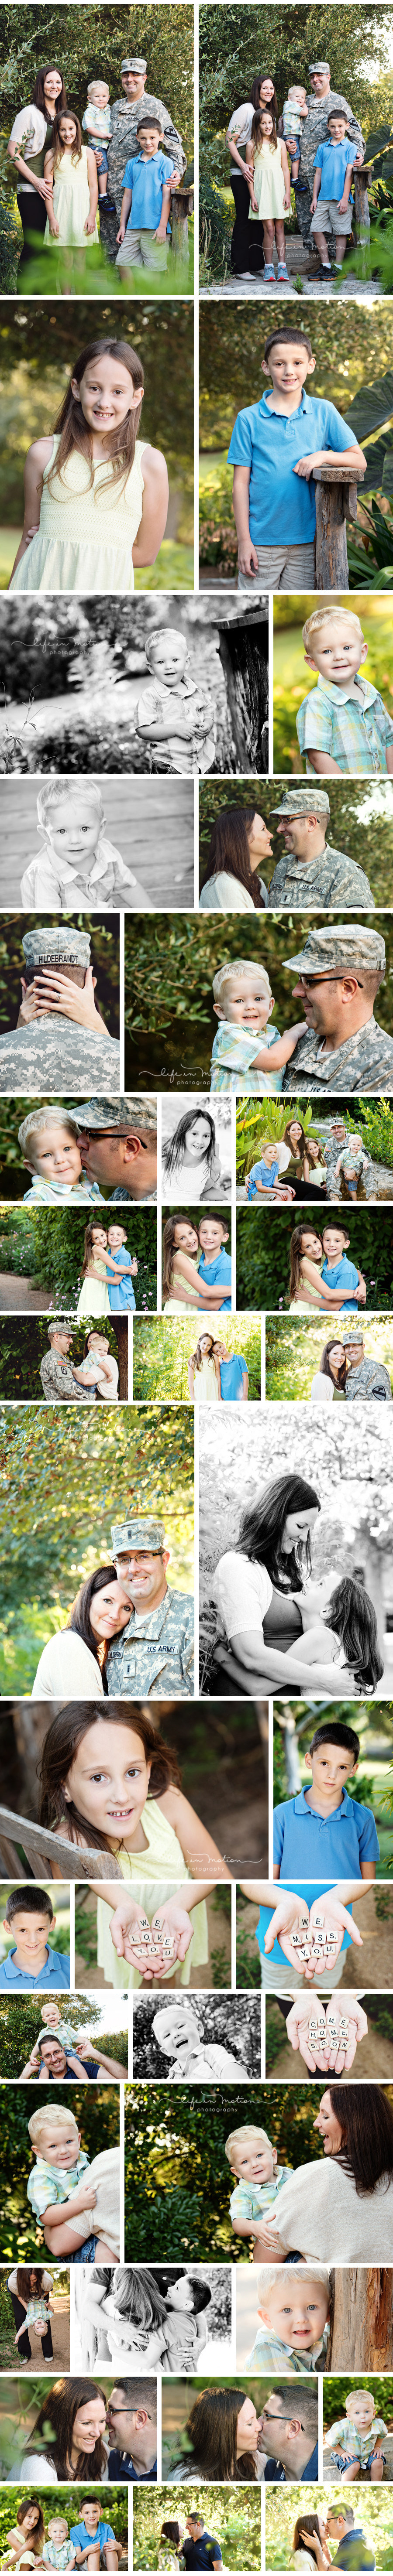 military_family_photographer_austin